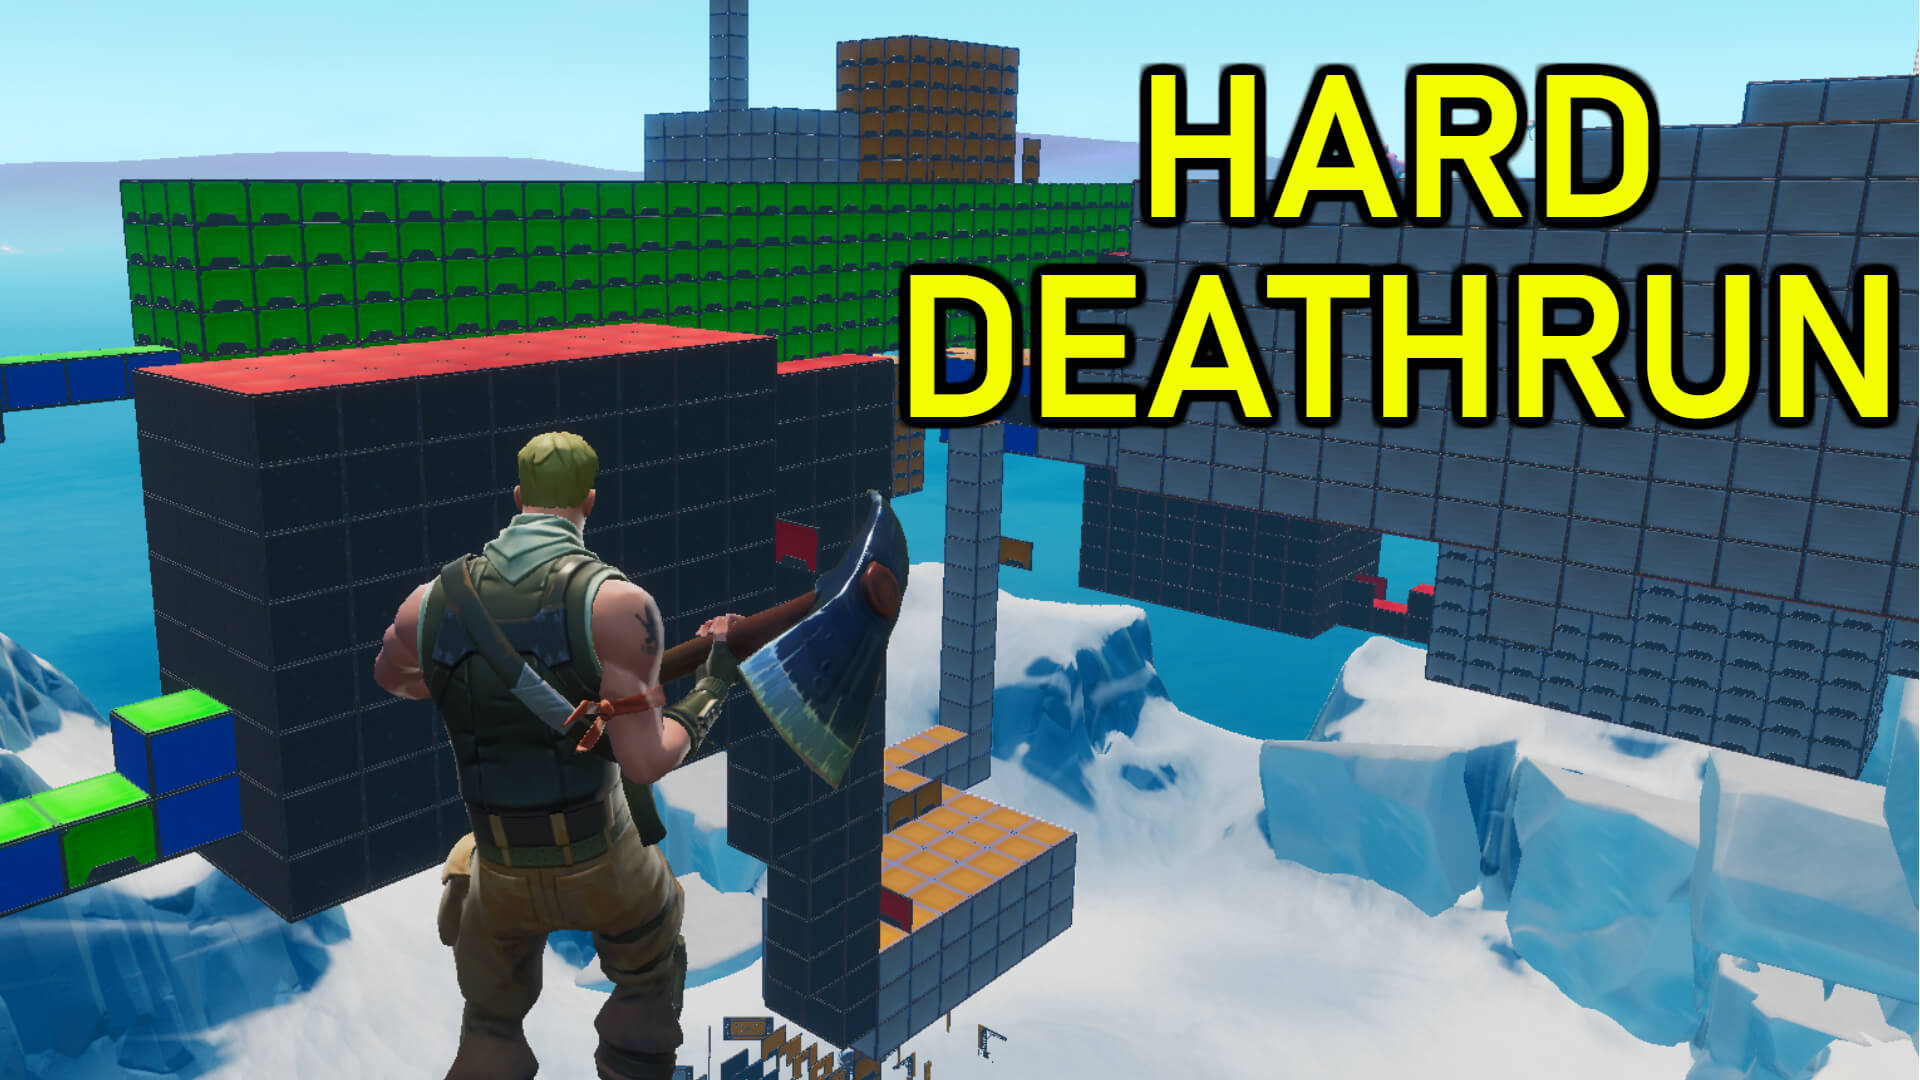 THE SUPER HARD DEATHRUN